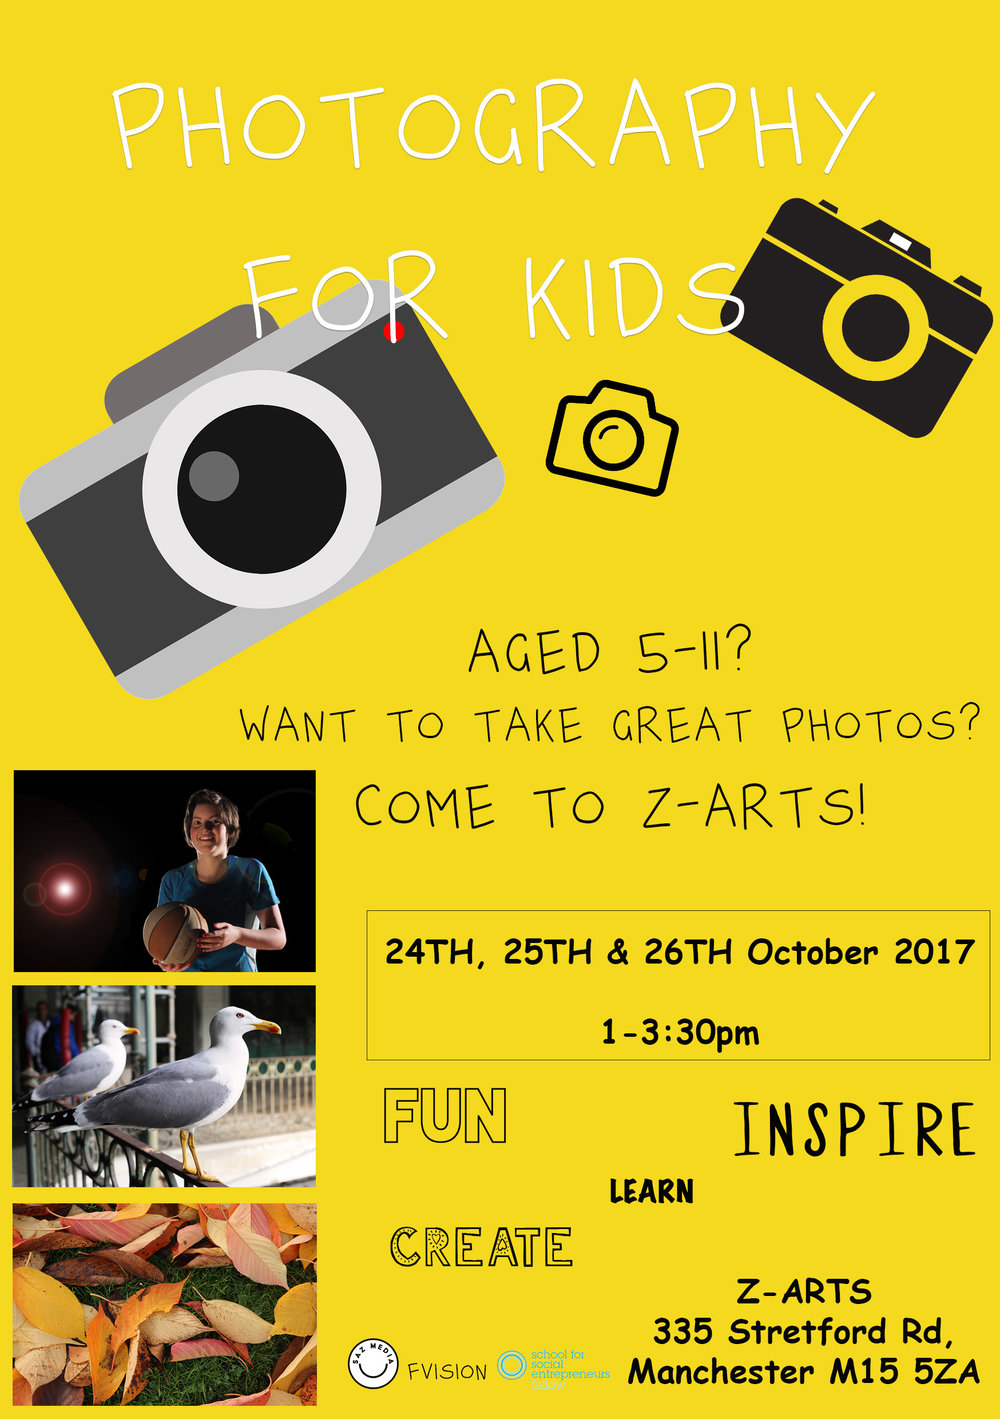 SAZ MEDIA PHOTOGRAPHY CLASSES AT ZARTS